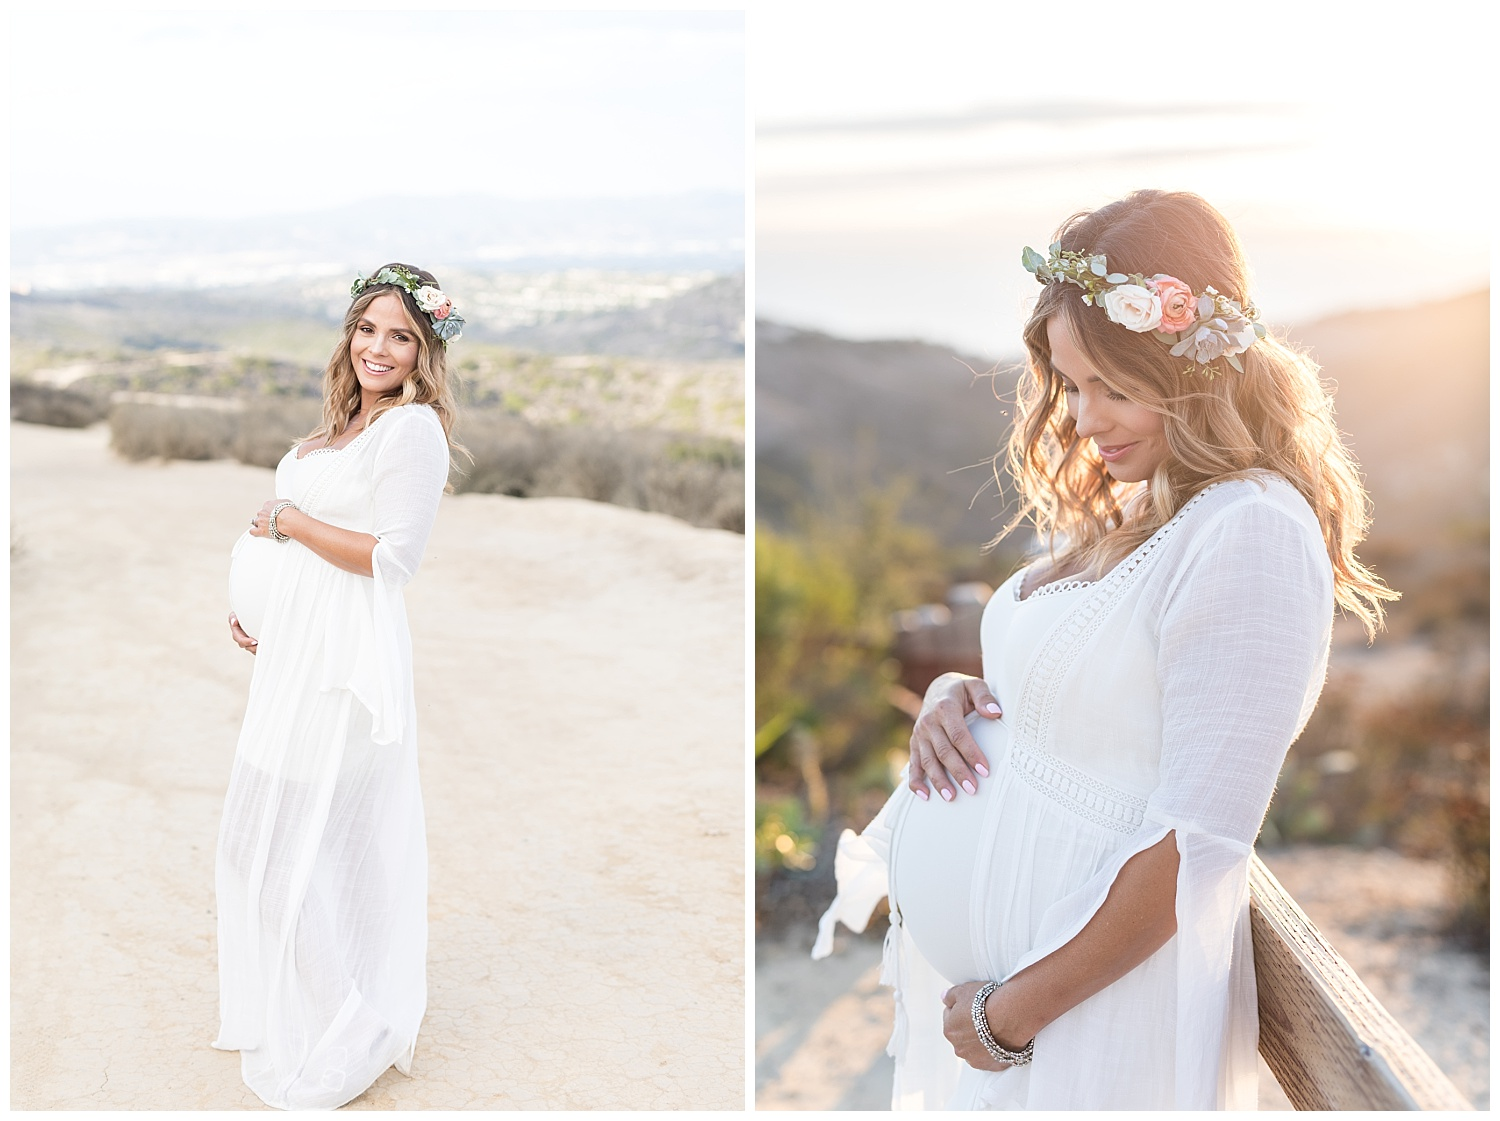 ashley - laguna beach, orange county hiking trail - maternity-0012